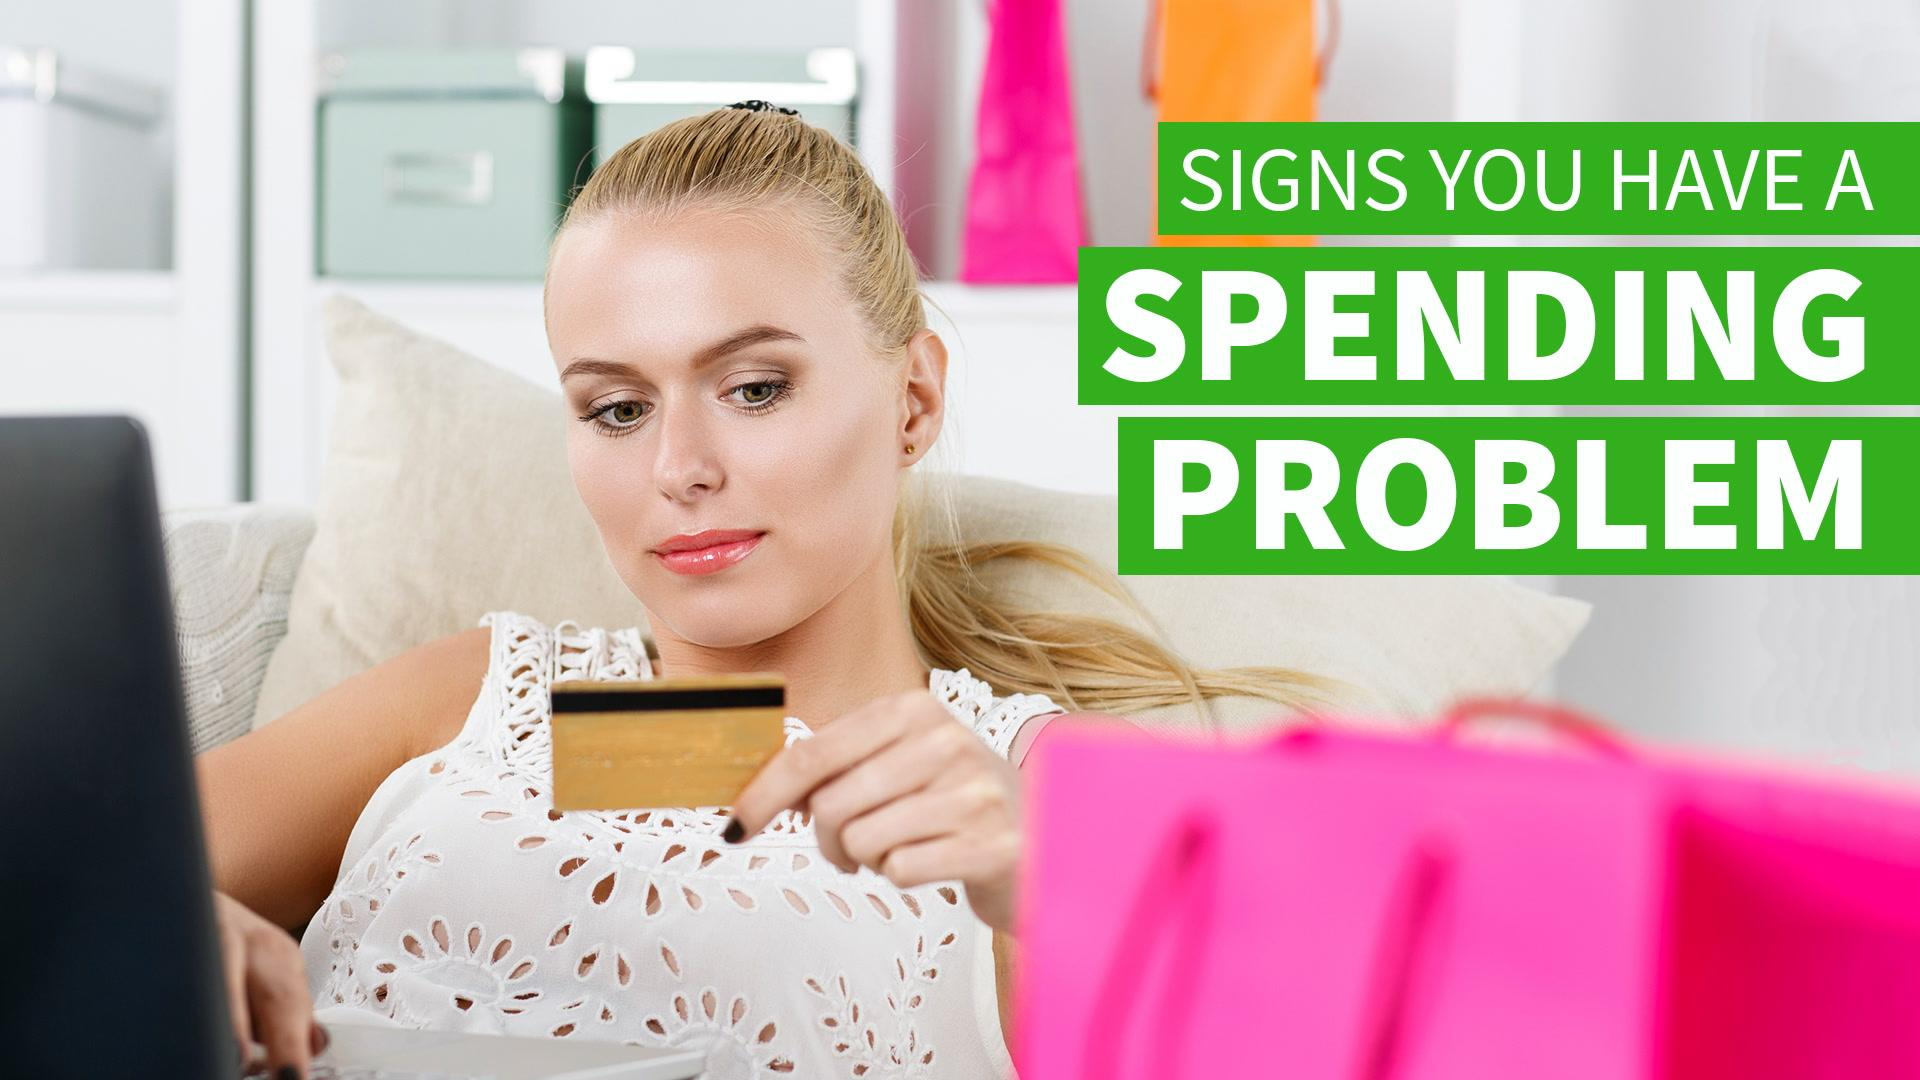 Signs You Have a Spending Problem